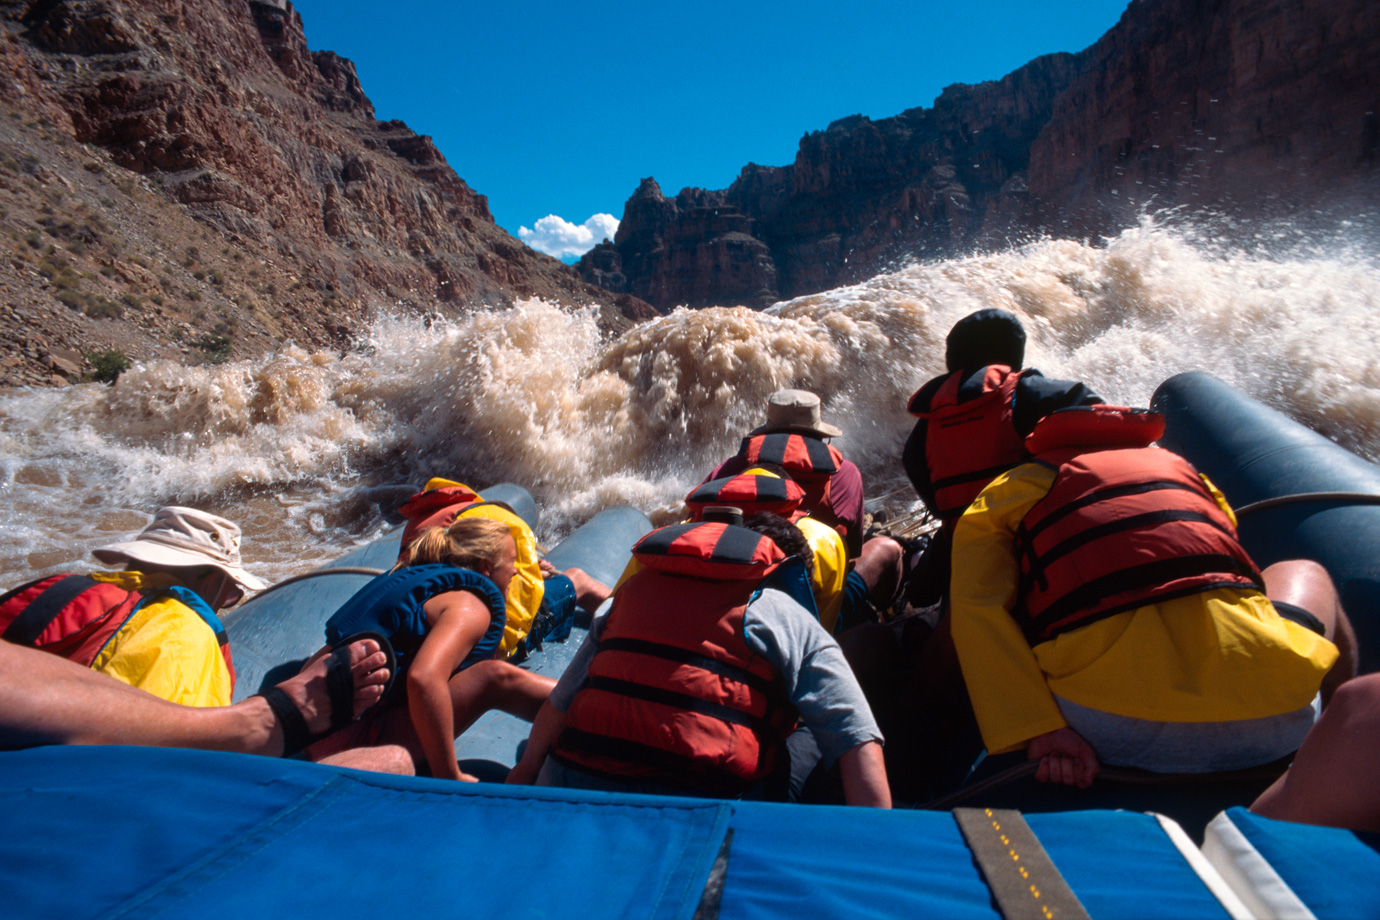 White water rafting in Cataract Canyon